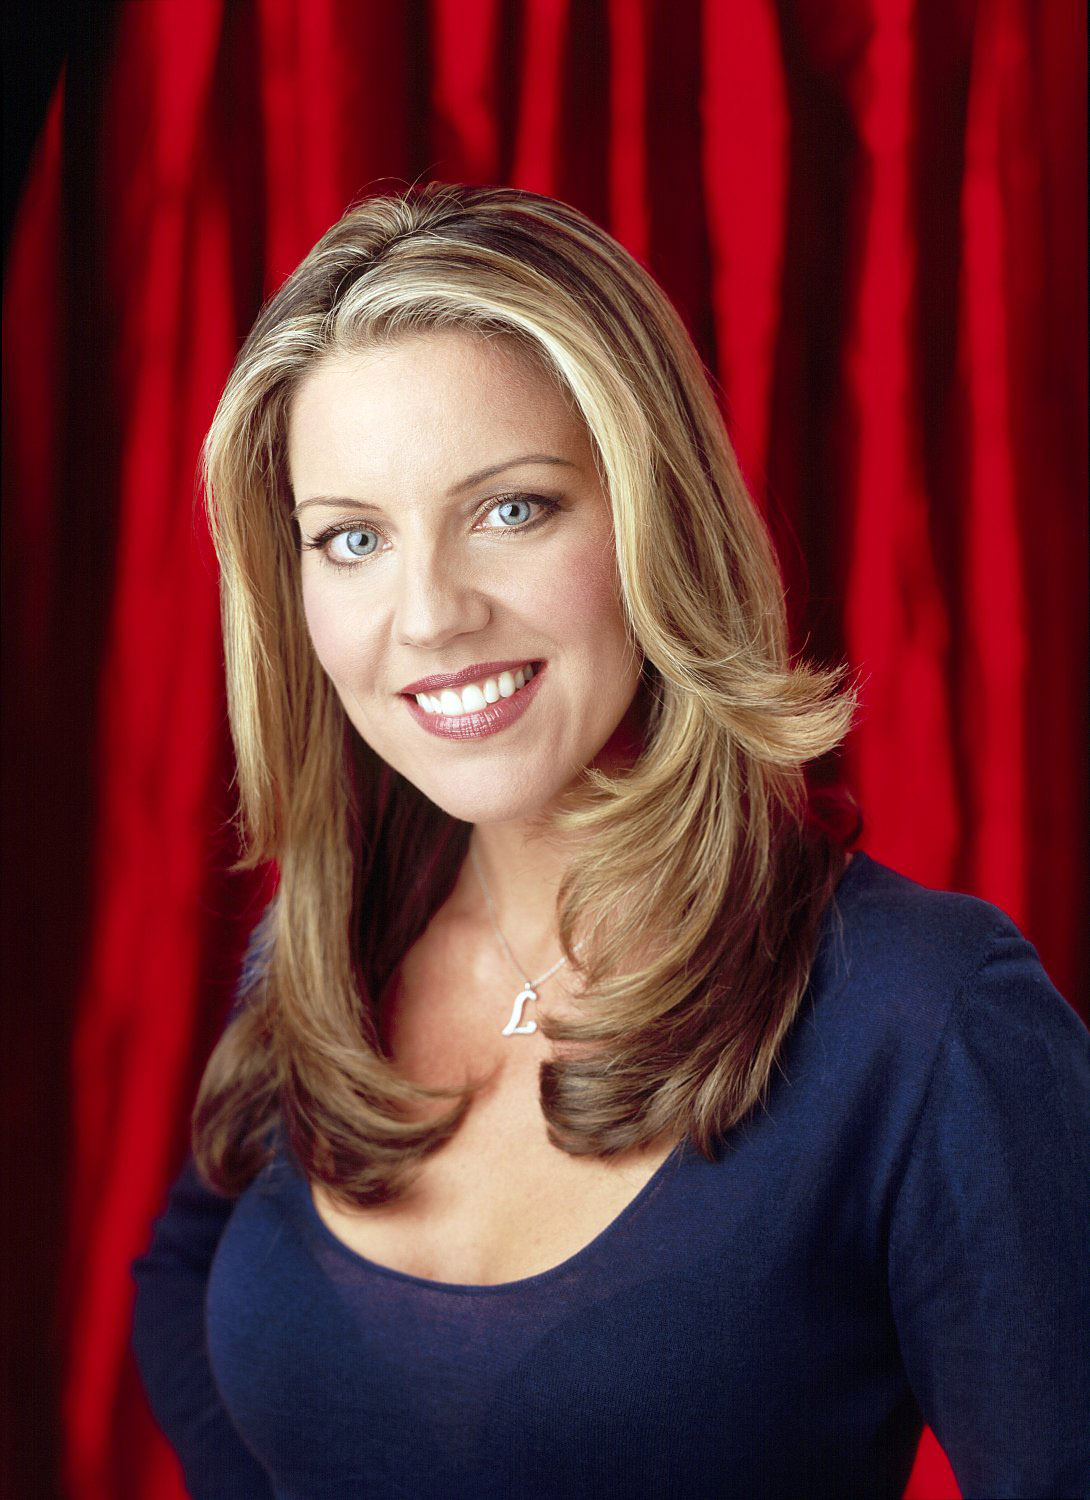 Andrea Parker photo gallery - 21 high quality pics of